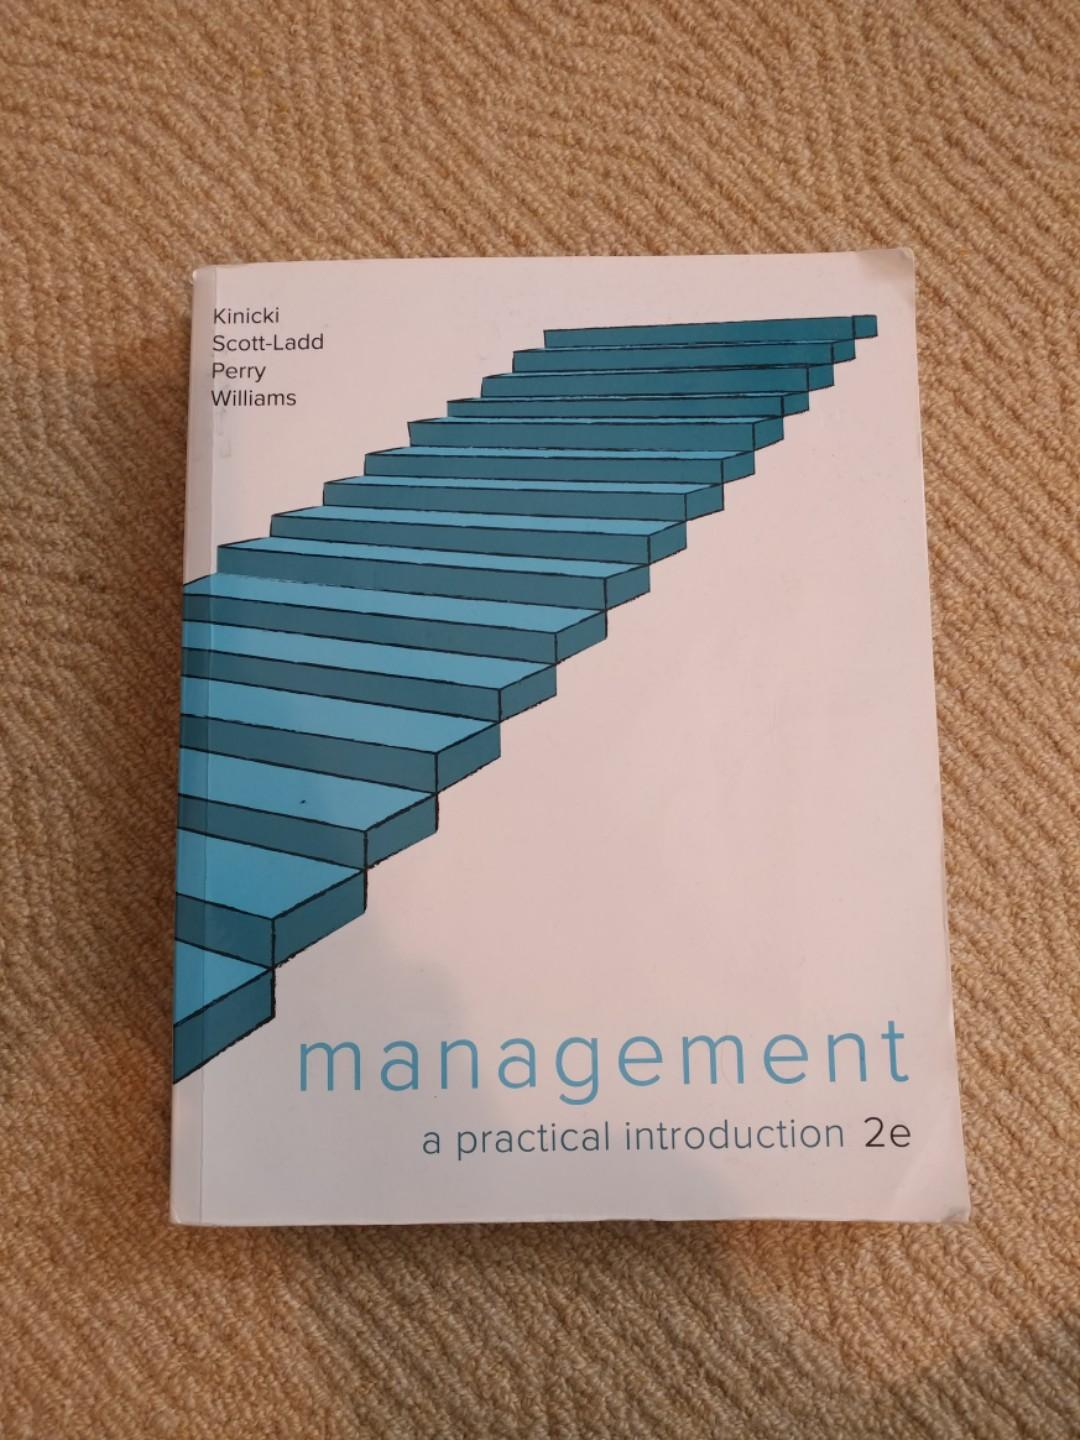 Management: a practical introduction (2nd ed.). Sydney, NSW: McGraw-Hill.